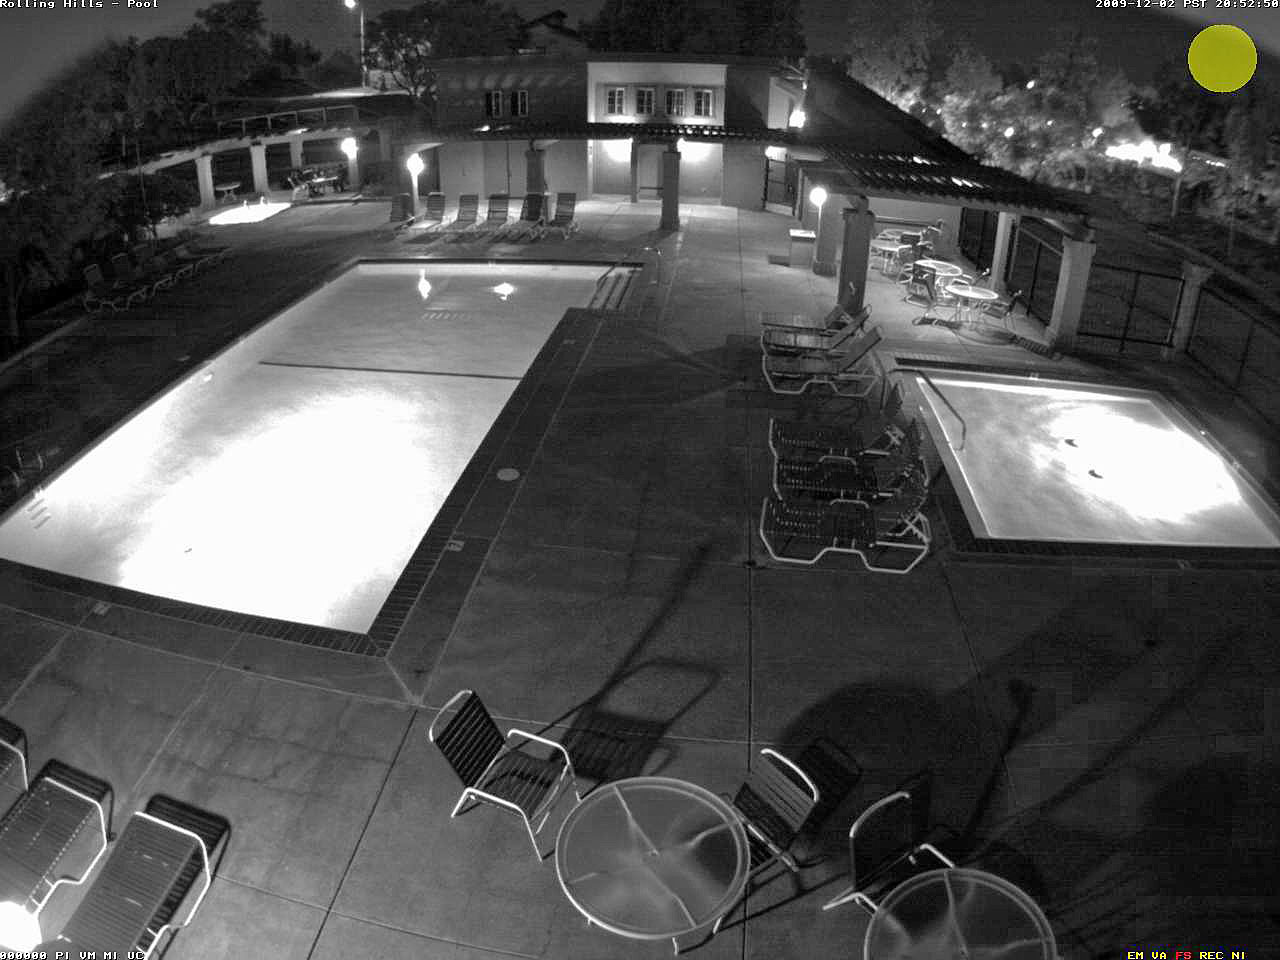 Ultra low light ip cameras cctv forum for that large an area you need a good camera we use the mobotix m12d sec daynight heres an image from last night no special lighting no ir lights mozeypictures Gallery